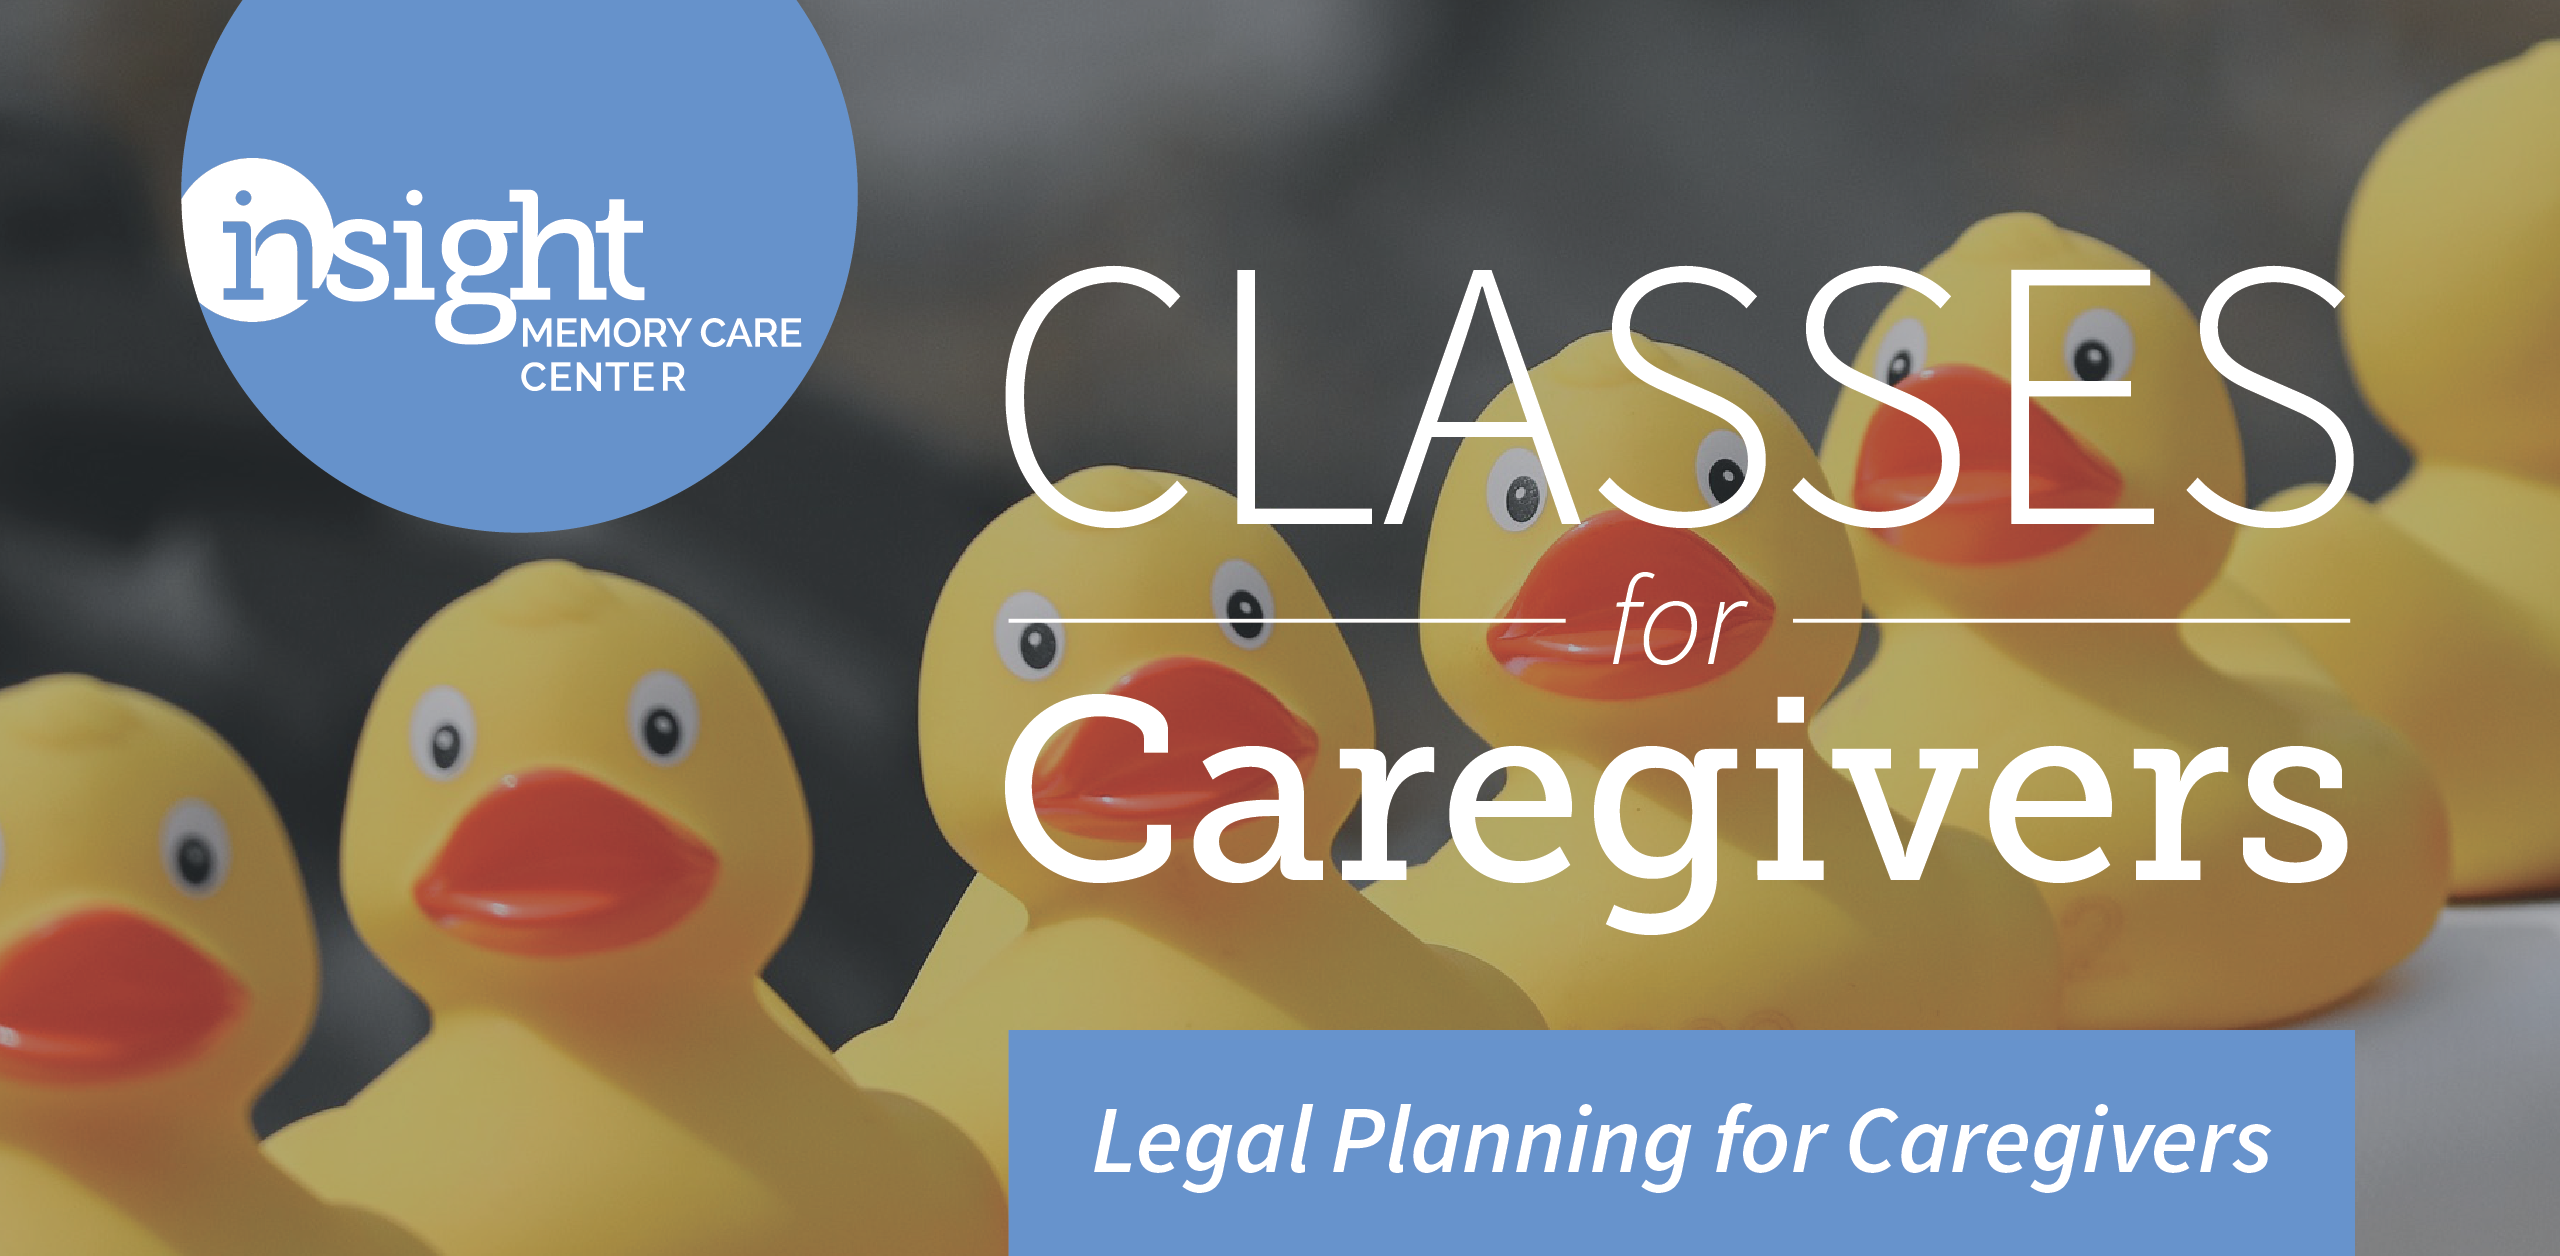 Legal Planning for Caregivers: Get Your Ducks in a Row